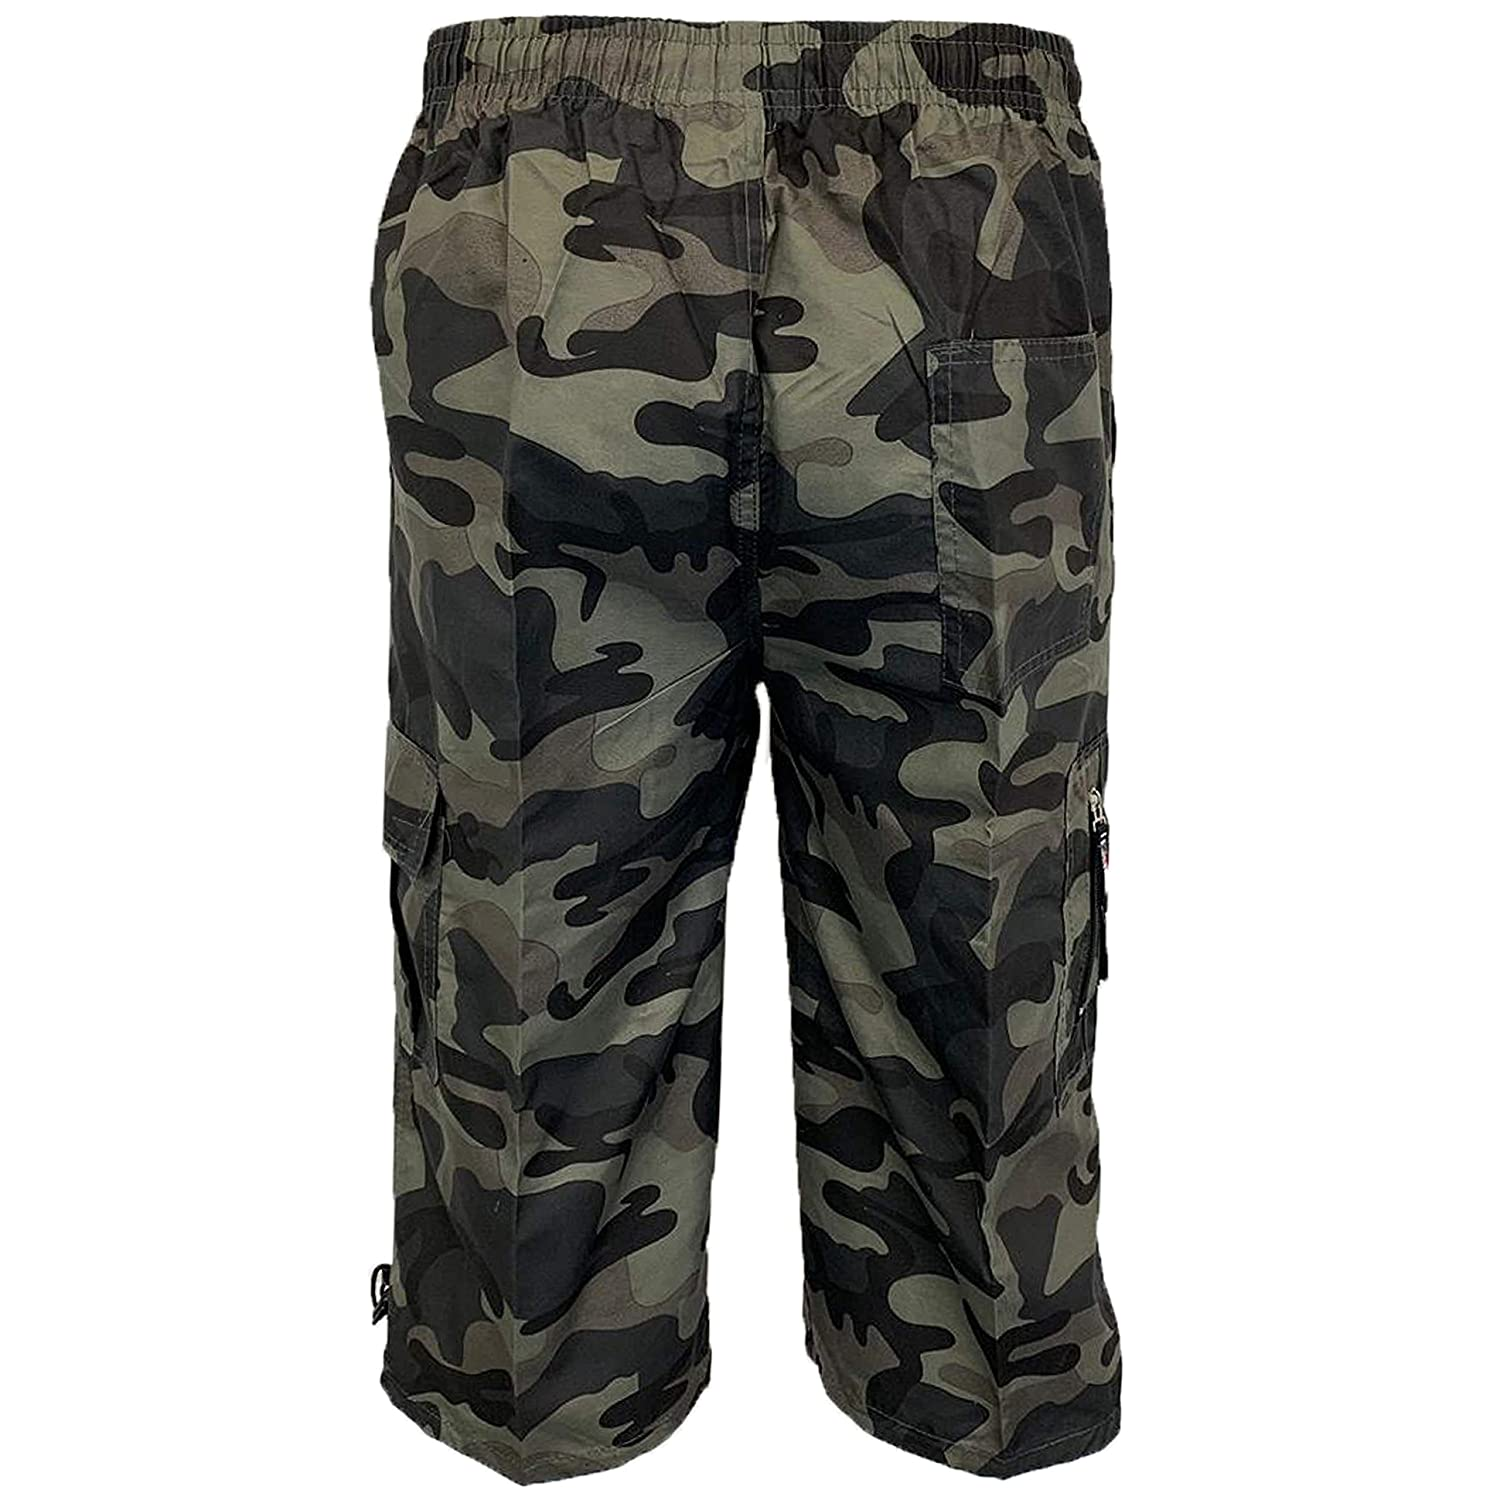 b9d6c1855d Mens Camouflage Combat Cargo Shorts 3/4 Length Army Military Sports Summer  New: Amazon.co.uk: Clothing